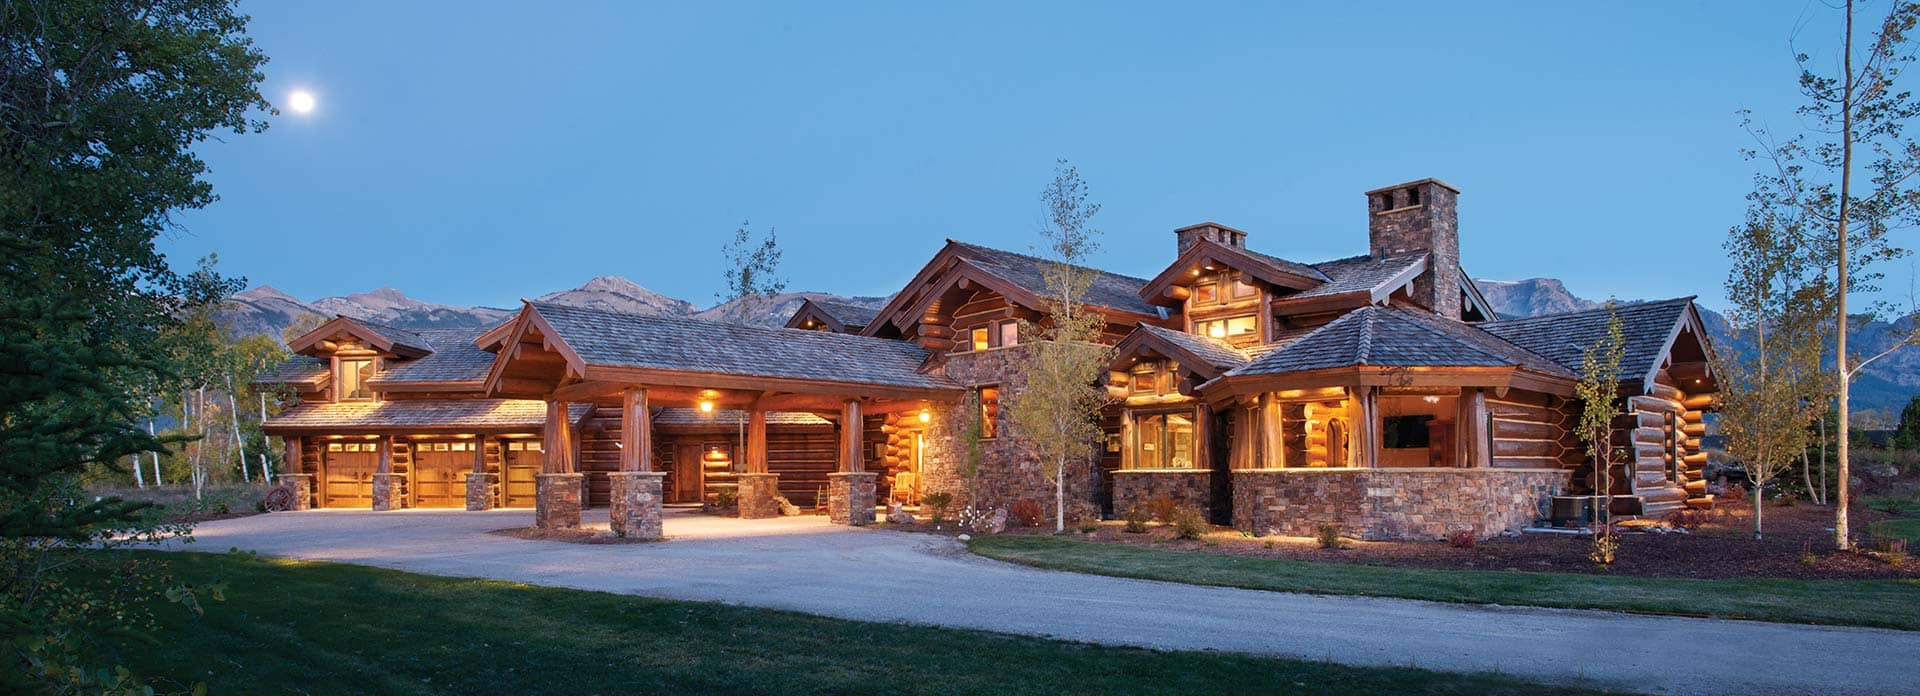 Best Kitchen Gallery: Handcrafted Log Homes Precisioncraft of Luxury Log Home Designs  on rachelxblog.com